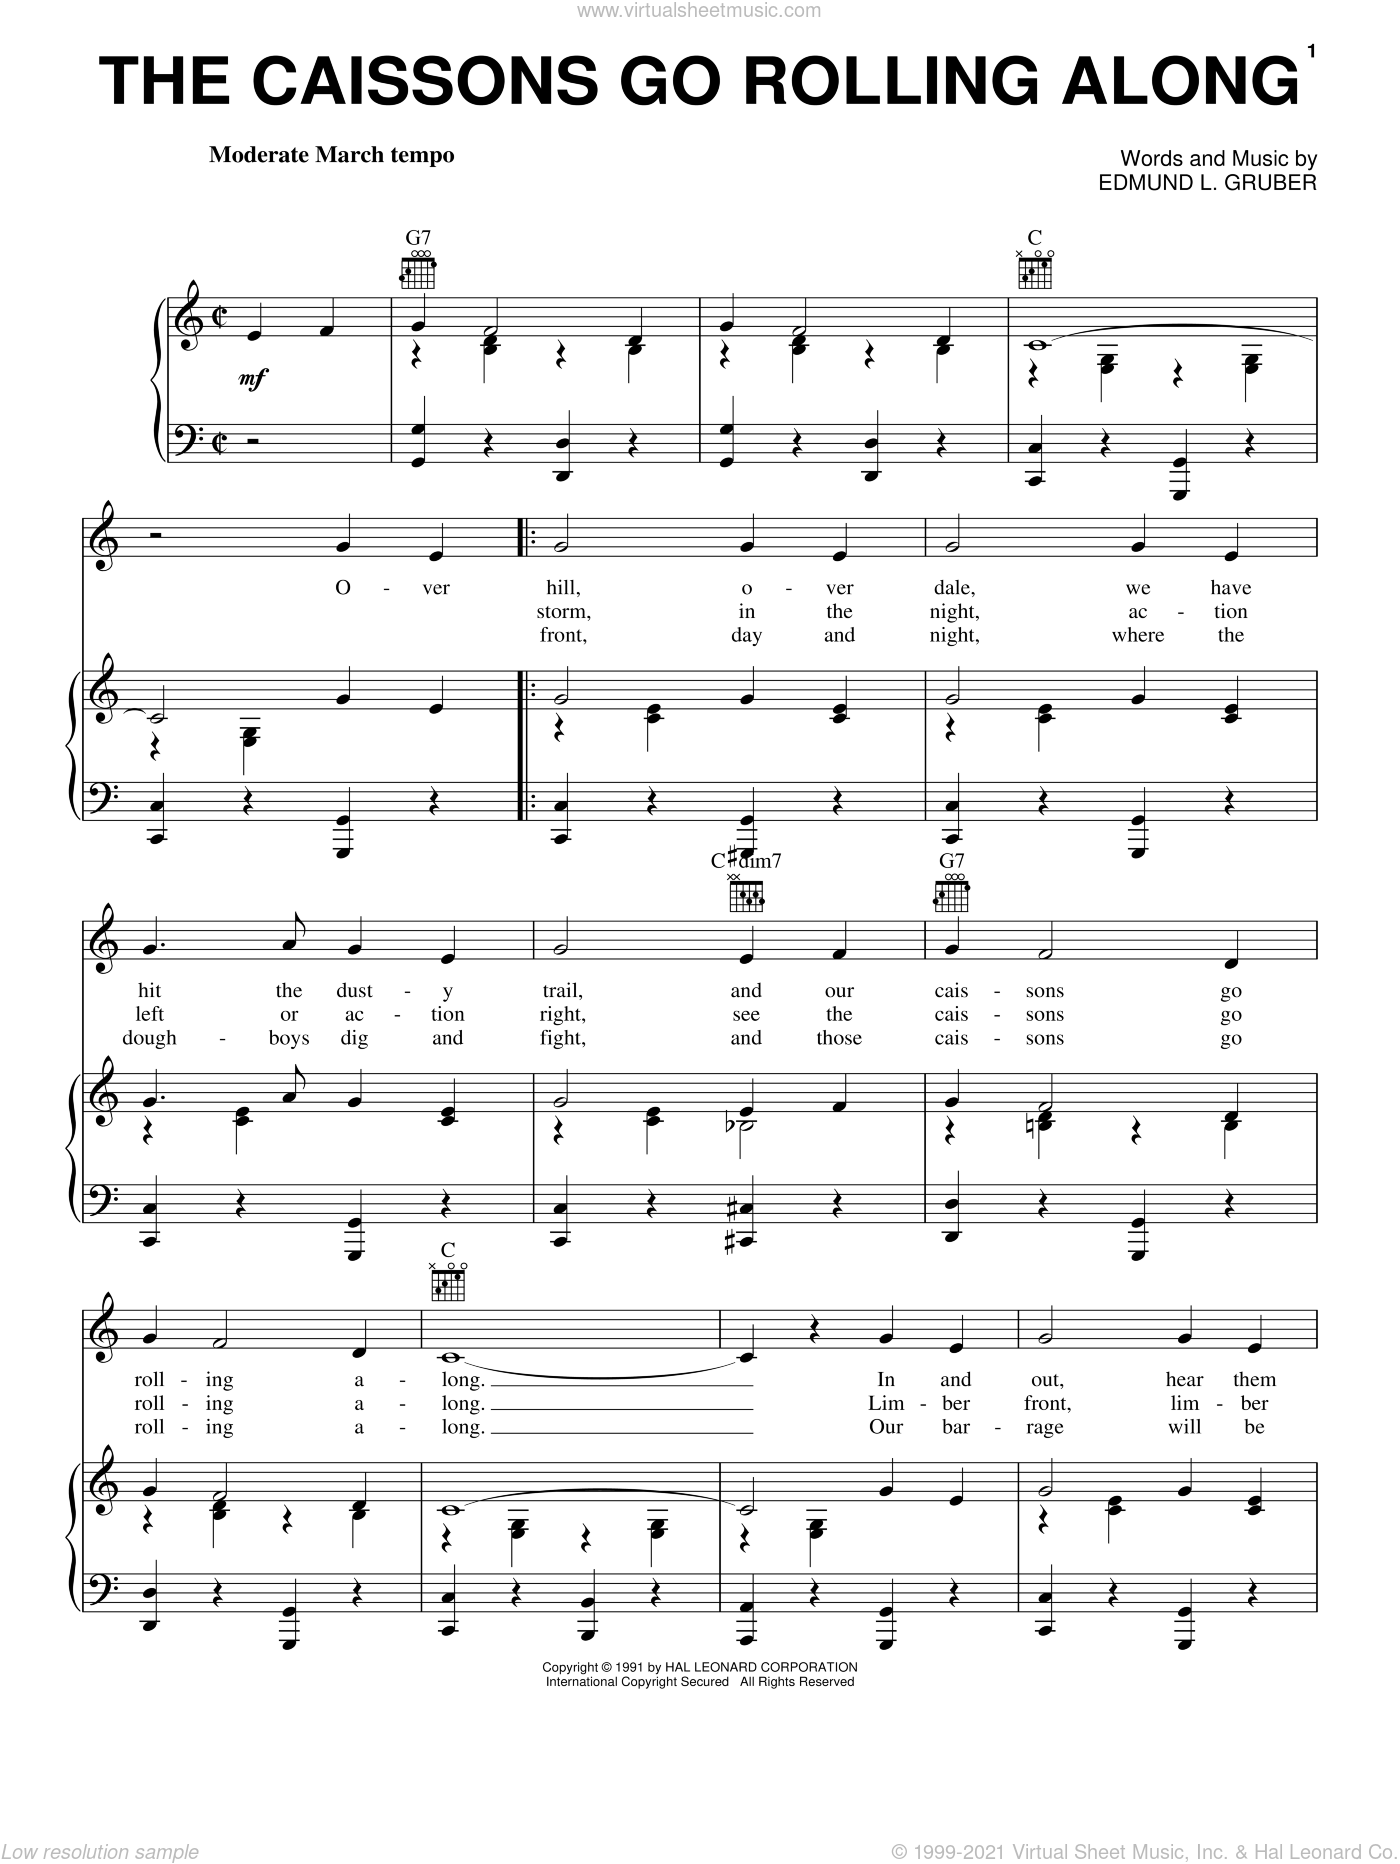 The Caissons Go Rolling Along sheet music for voice, piano or guitar by Edmund L. Gruber. Score Image Preview.